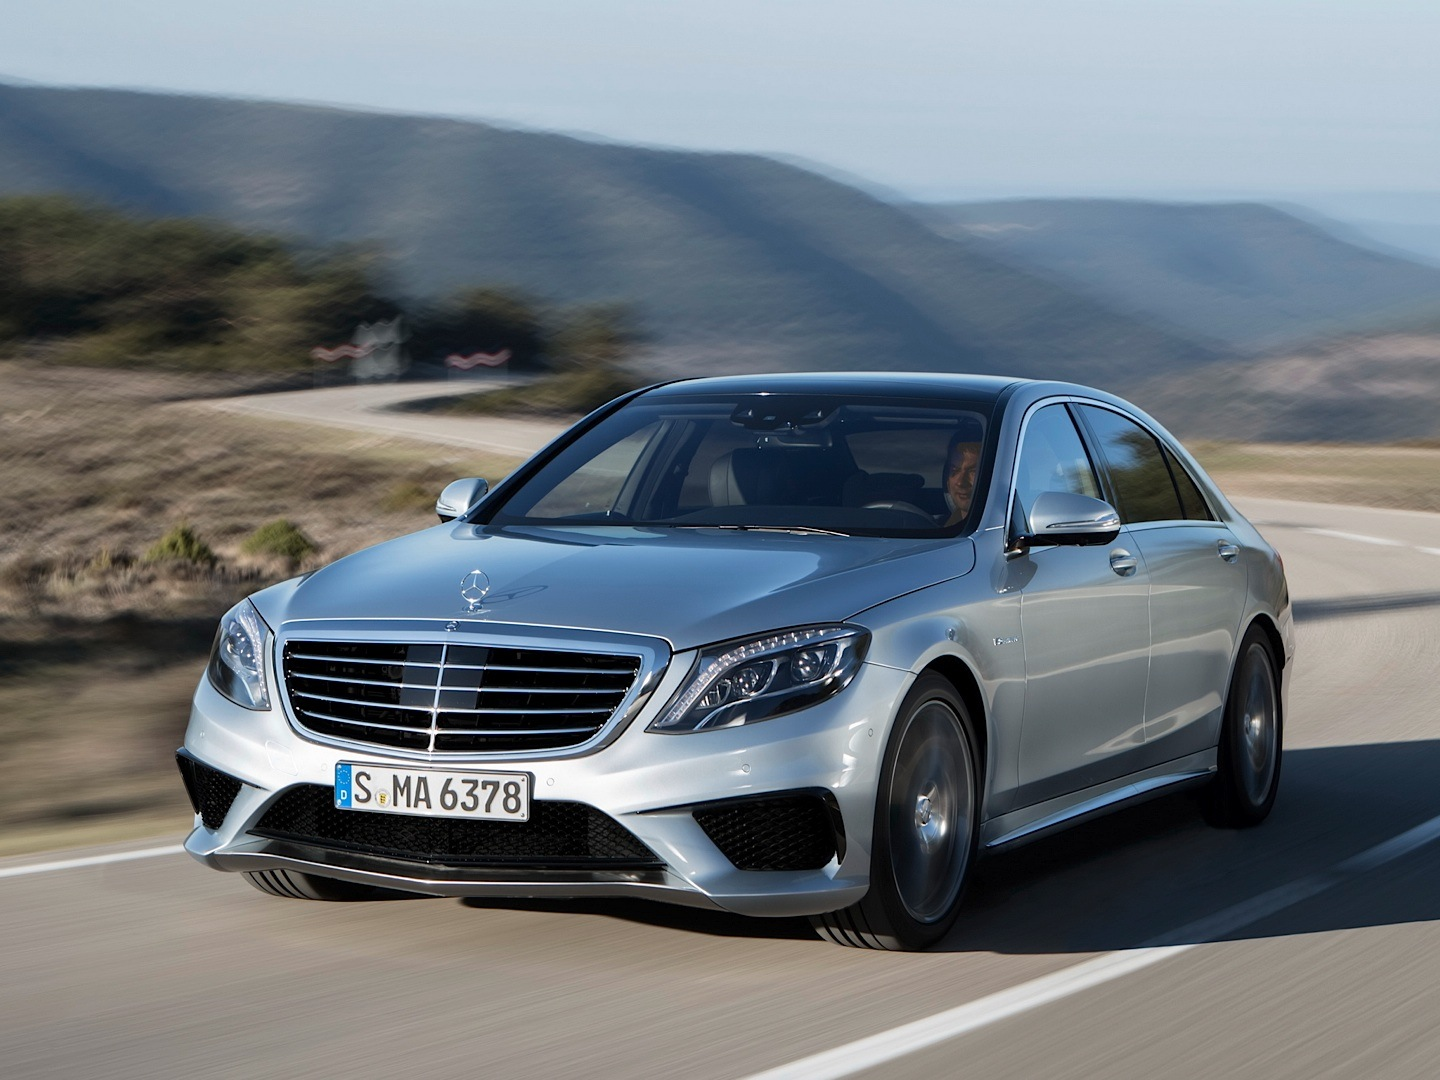 The Mercedes-Benz S63 AMG Gets Its Pricing Sorted out for the UK ...